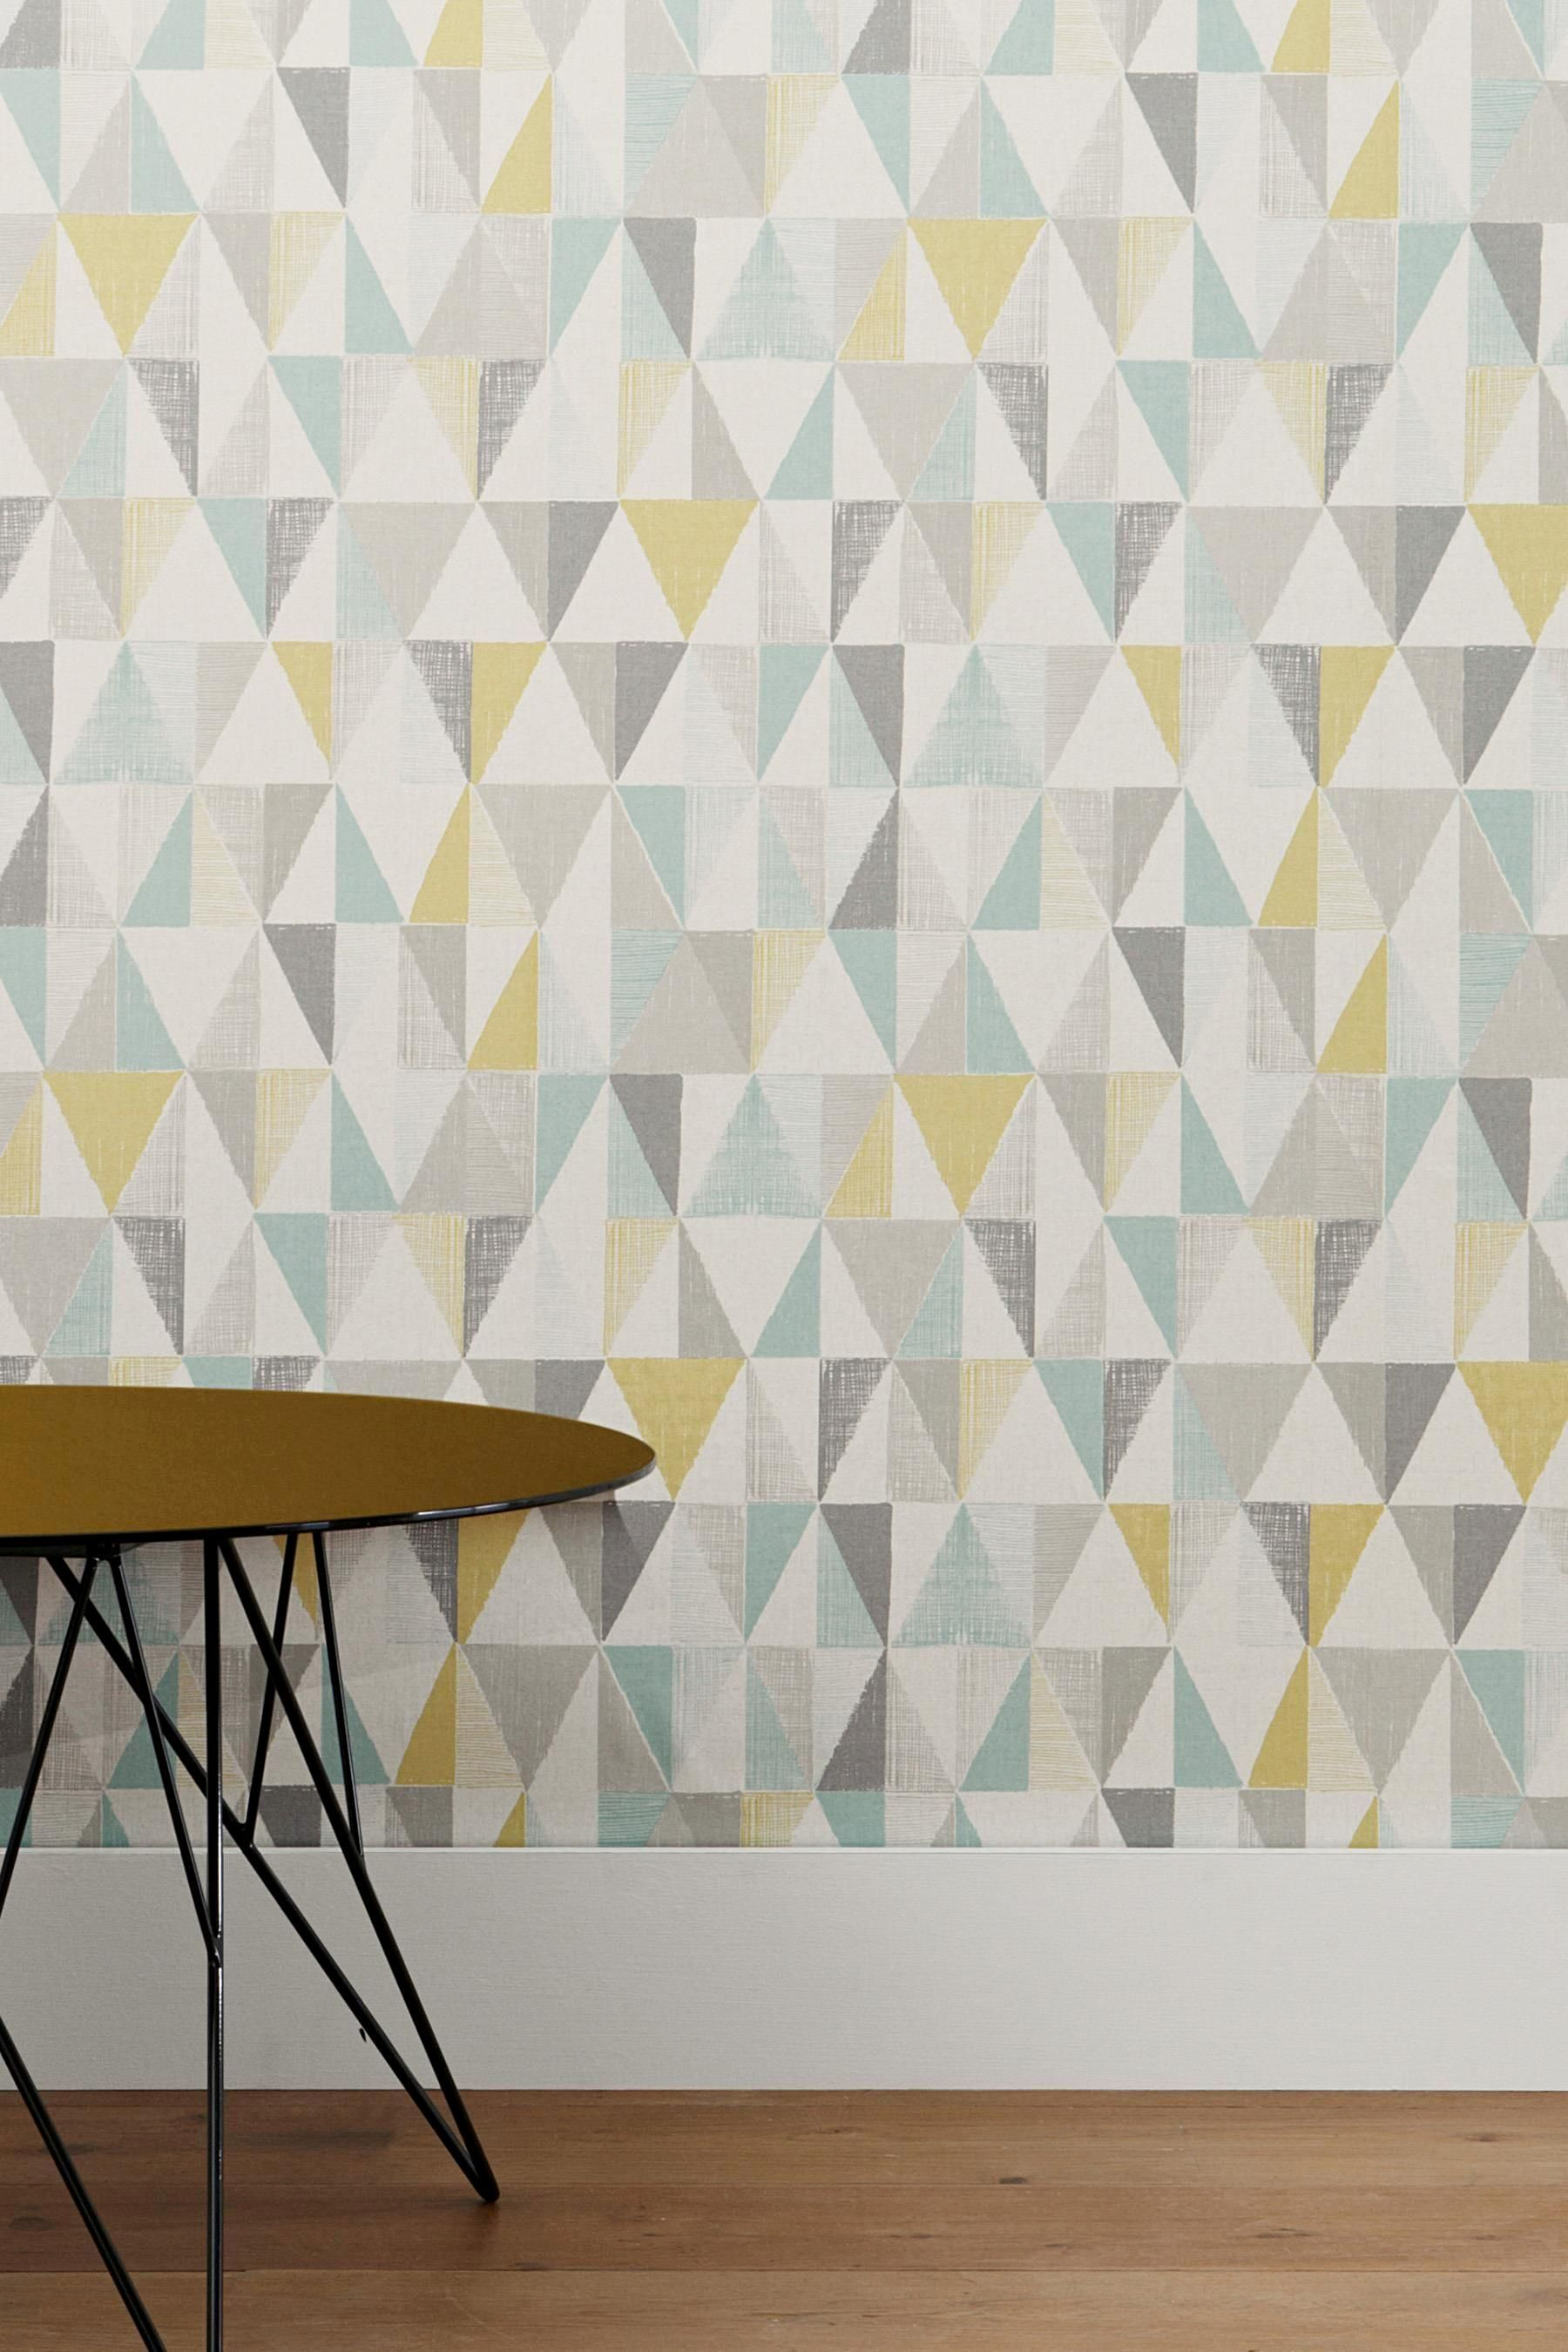 Affordable and stylish wallpaper from next fresh design blog - Wall wallpaper designs ...